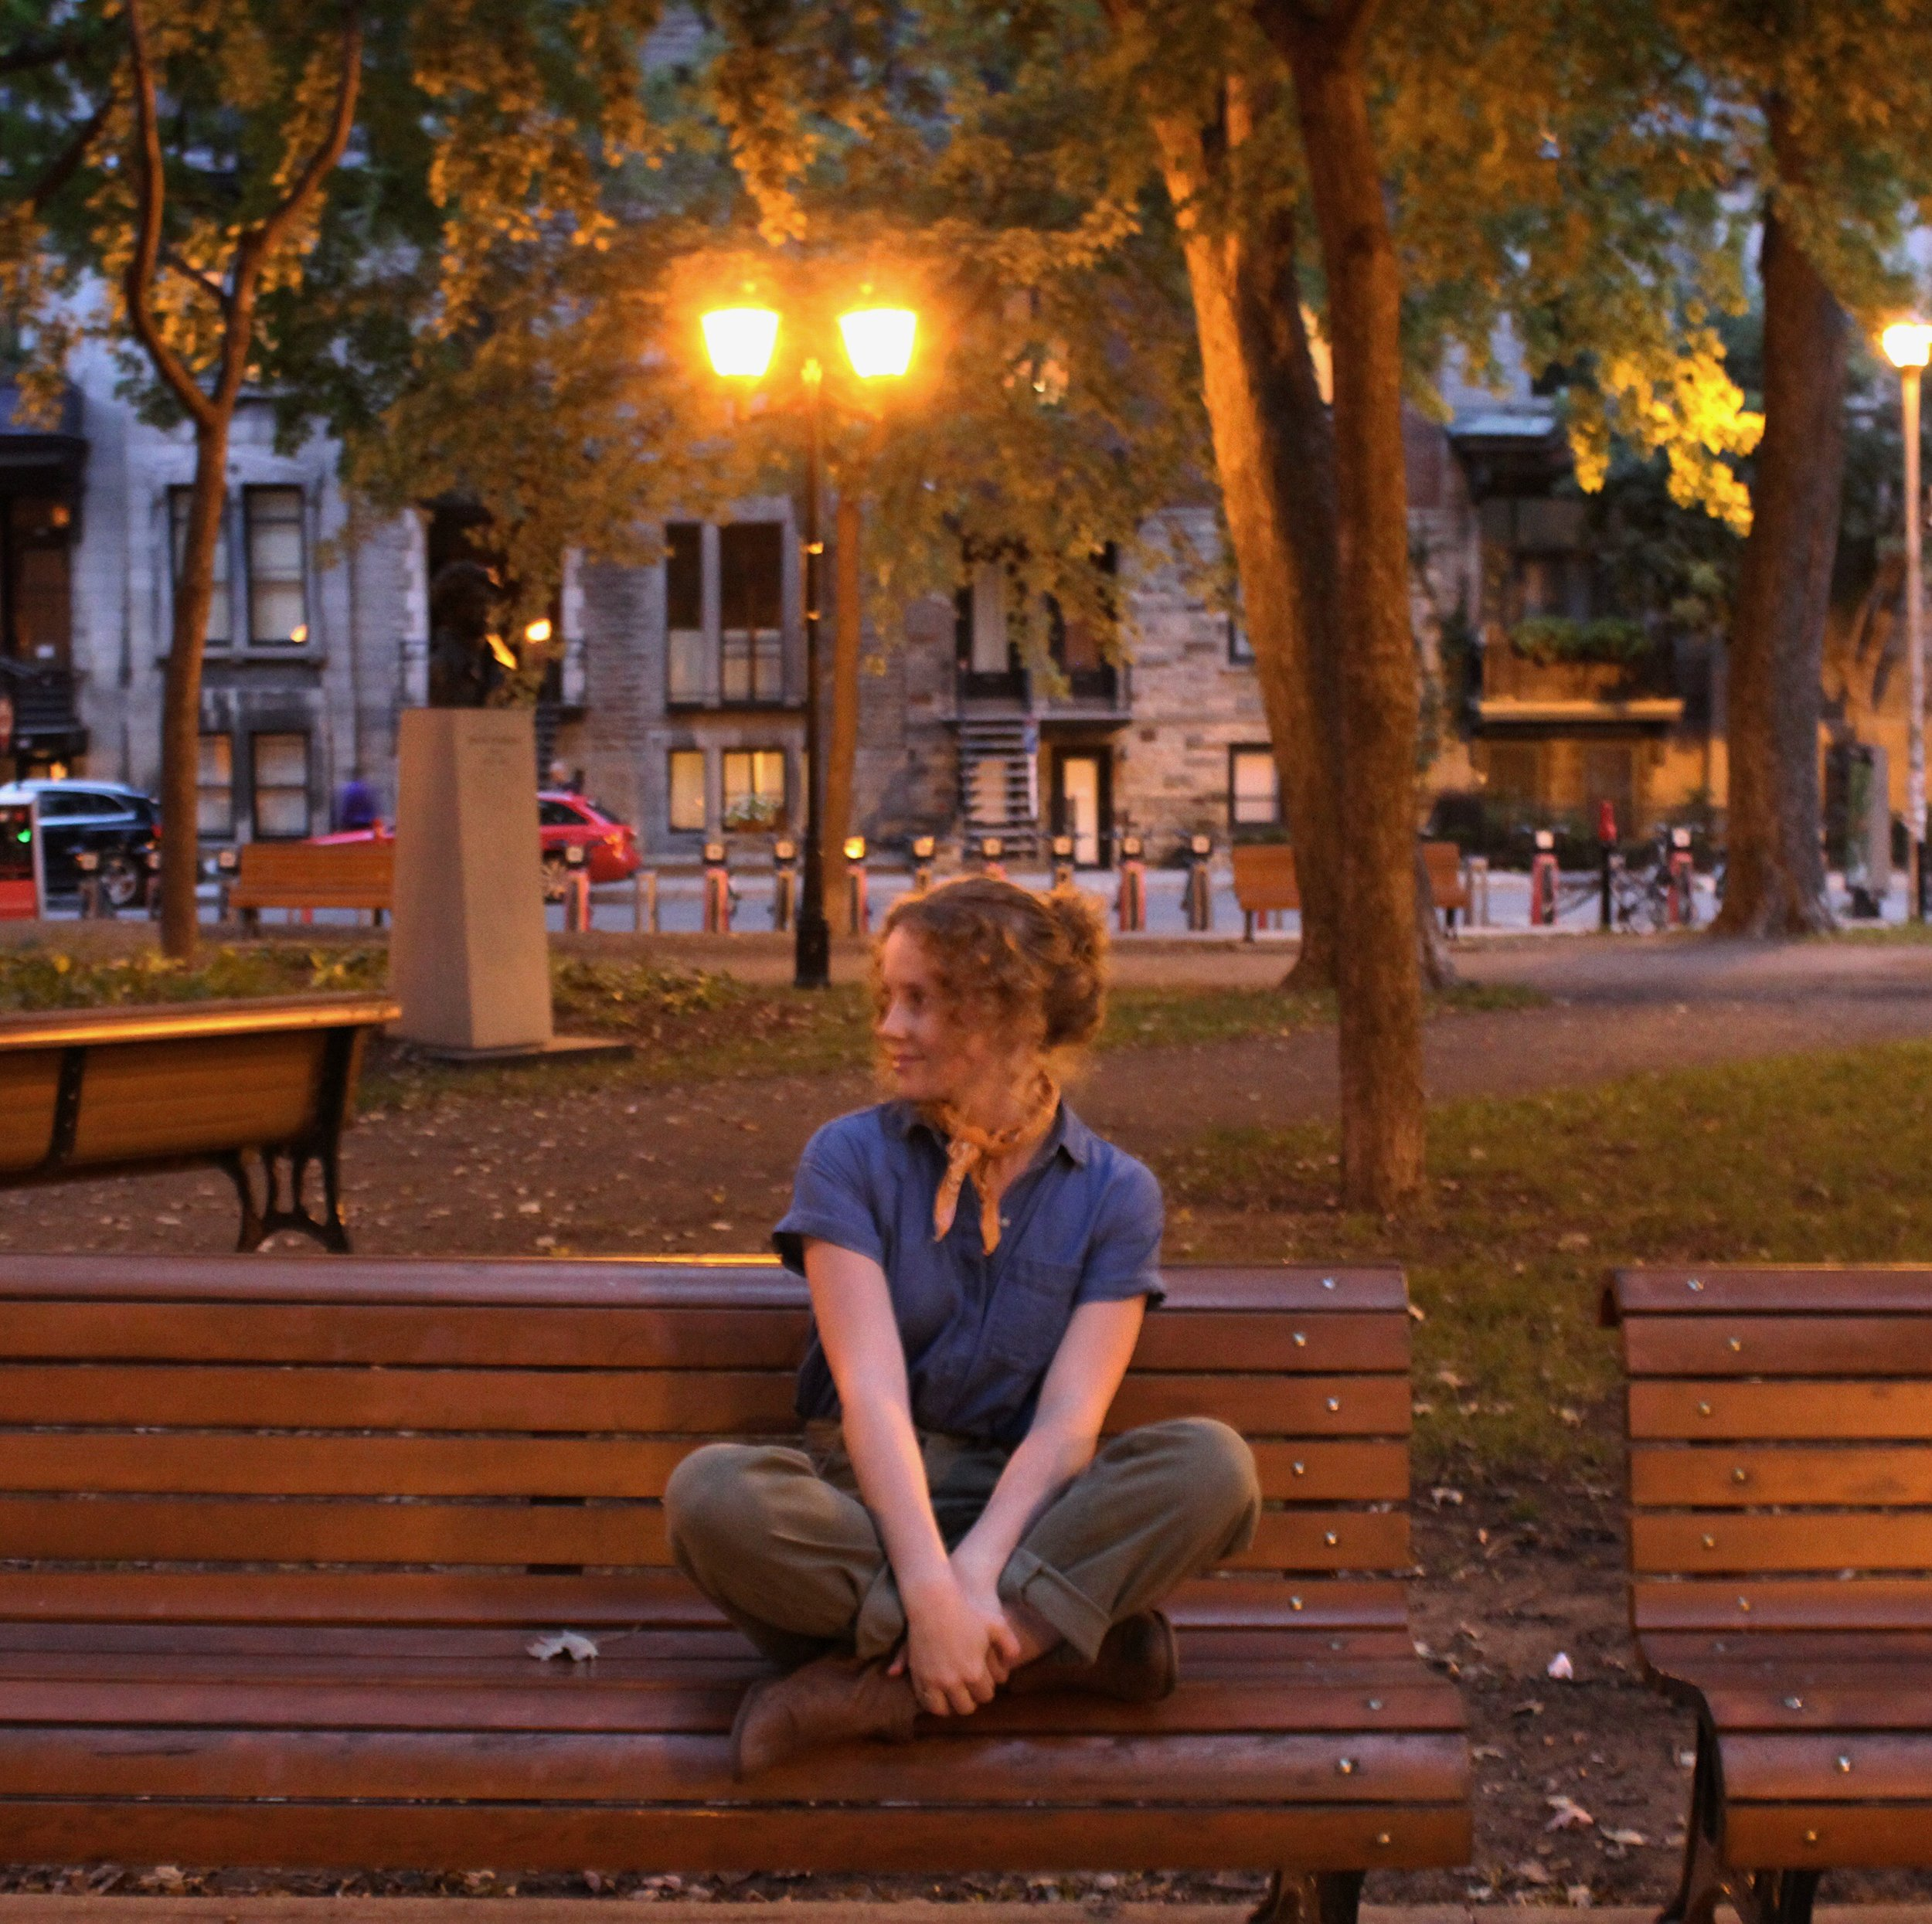 girl sitting on bench in park